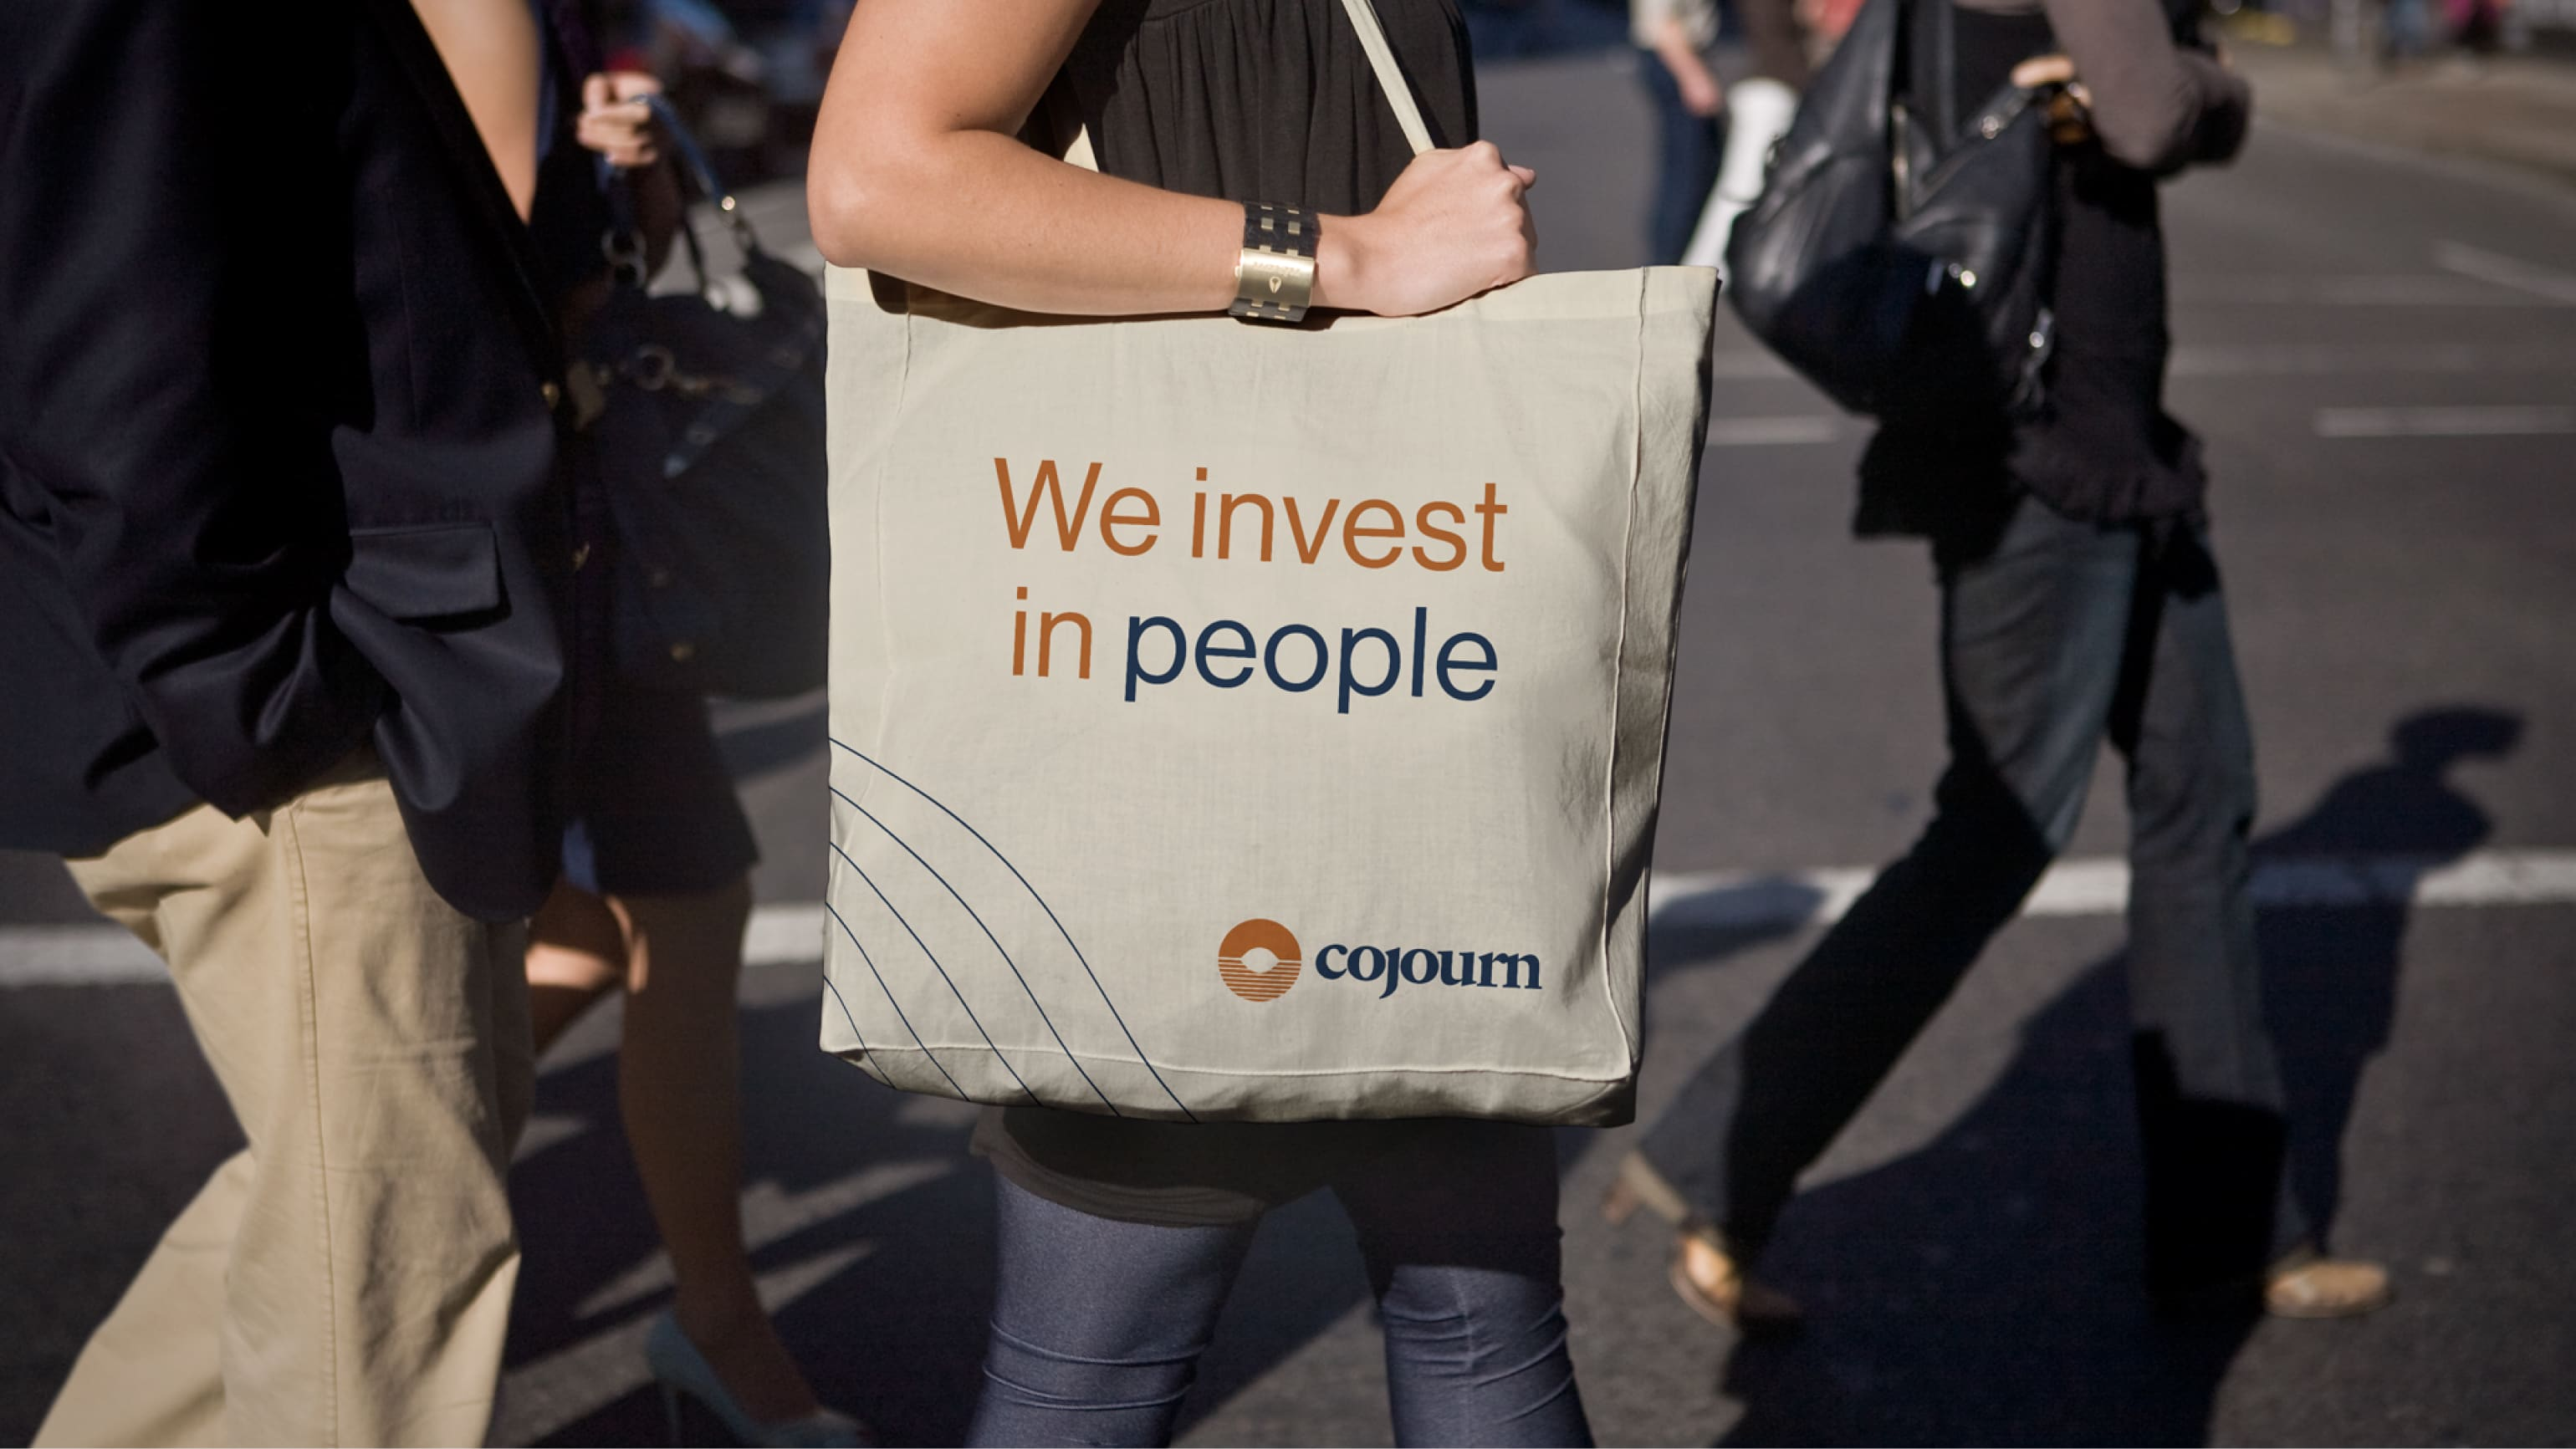 Mockup showing the Cojourn logo on a tote bag.